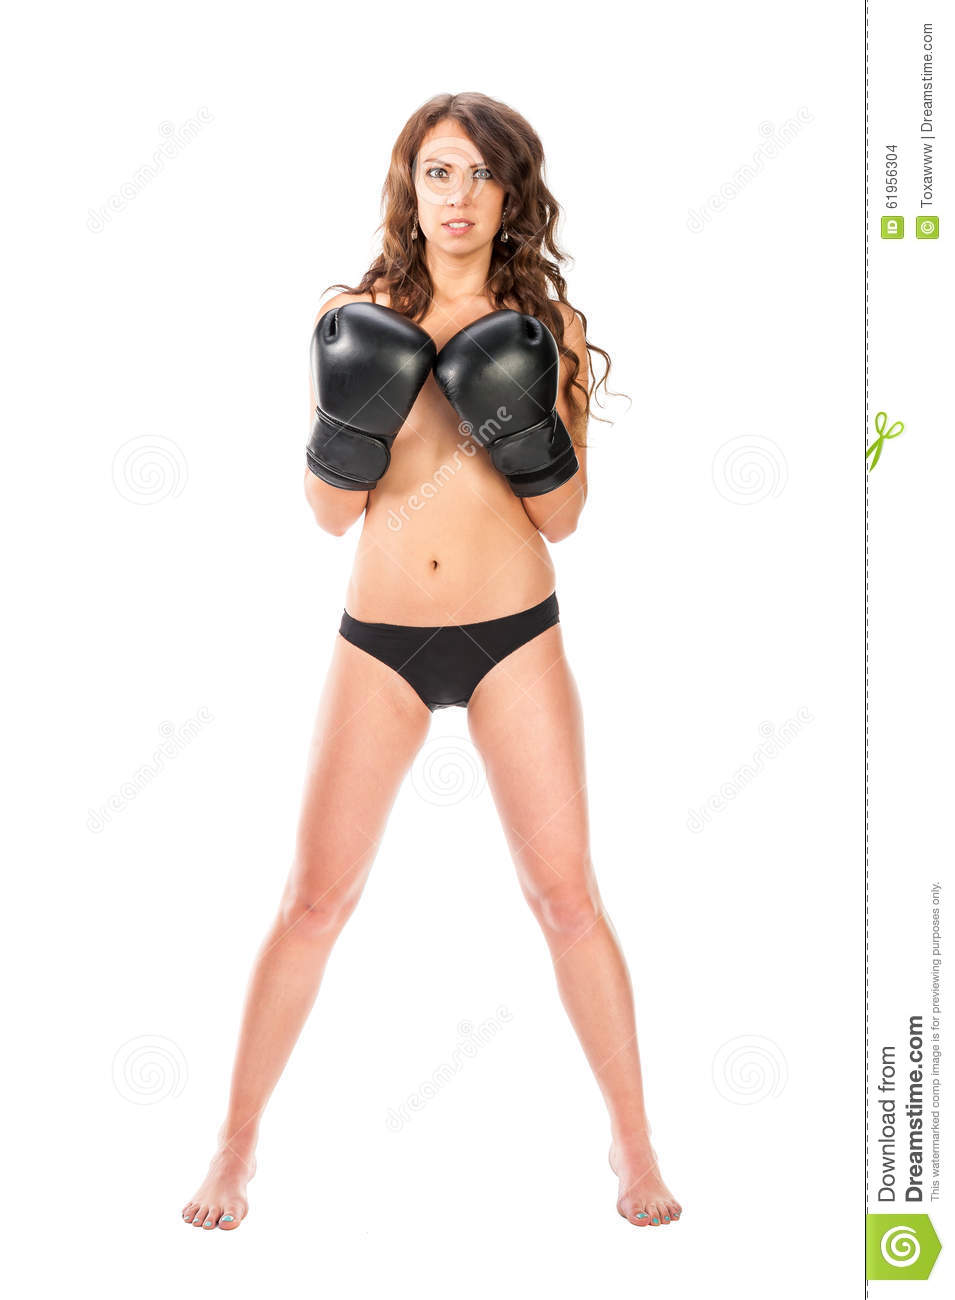 Boxer Young Girl Poses In The Studio With Boxing Gloves